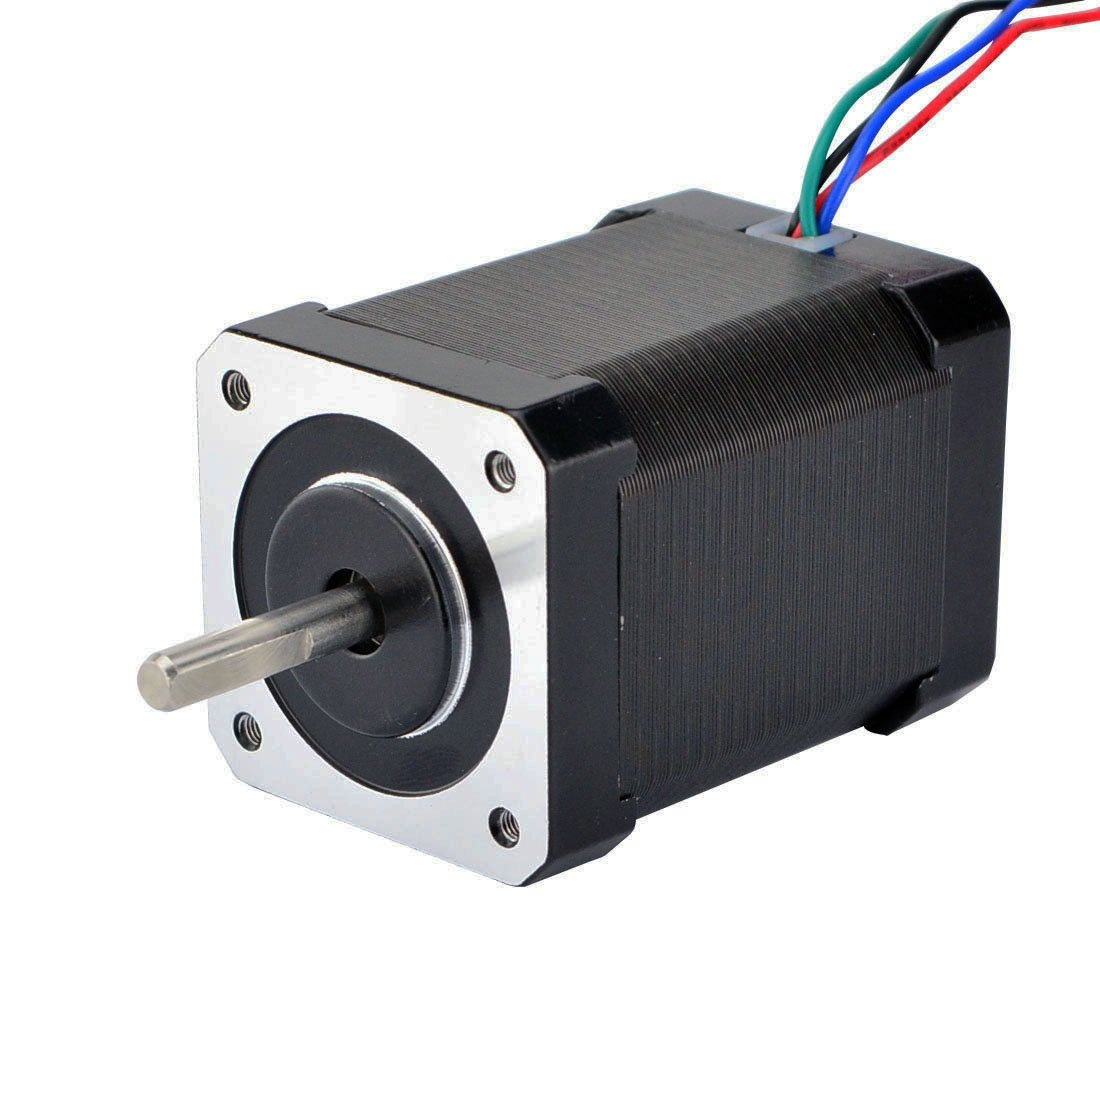 High Torque Low Current Nema 17 Stepper Motor 85oz.in/60Ncm 0.64A Extruder Motor OSM Technology Co. Ltd. 17HS24-0644S